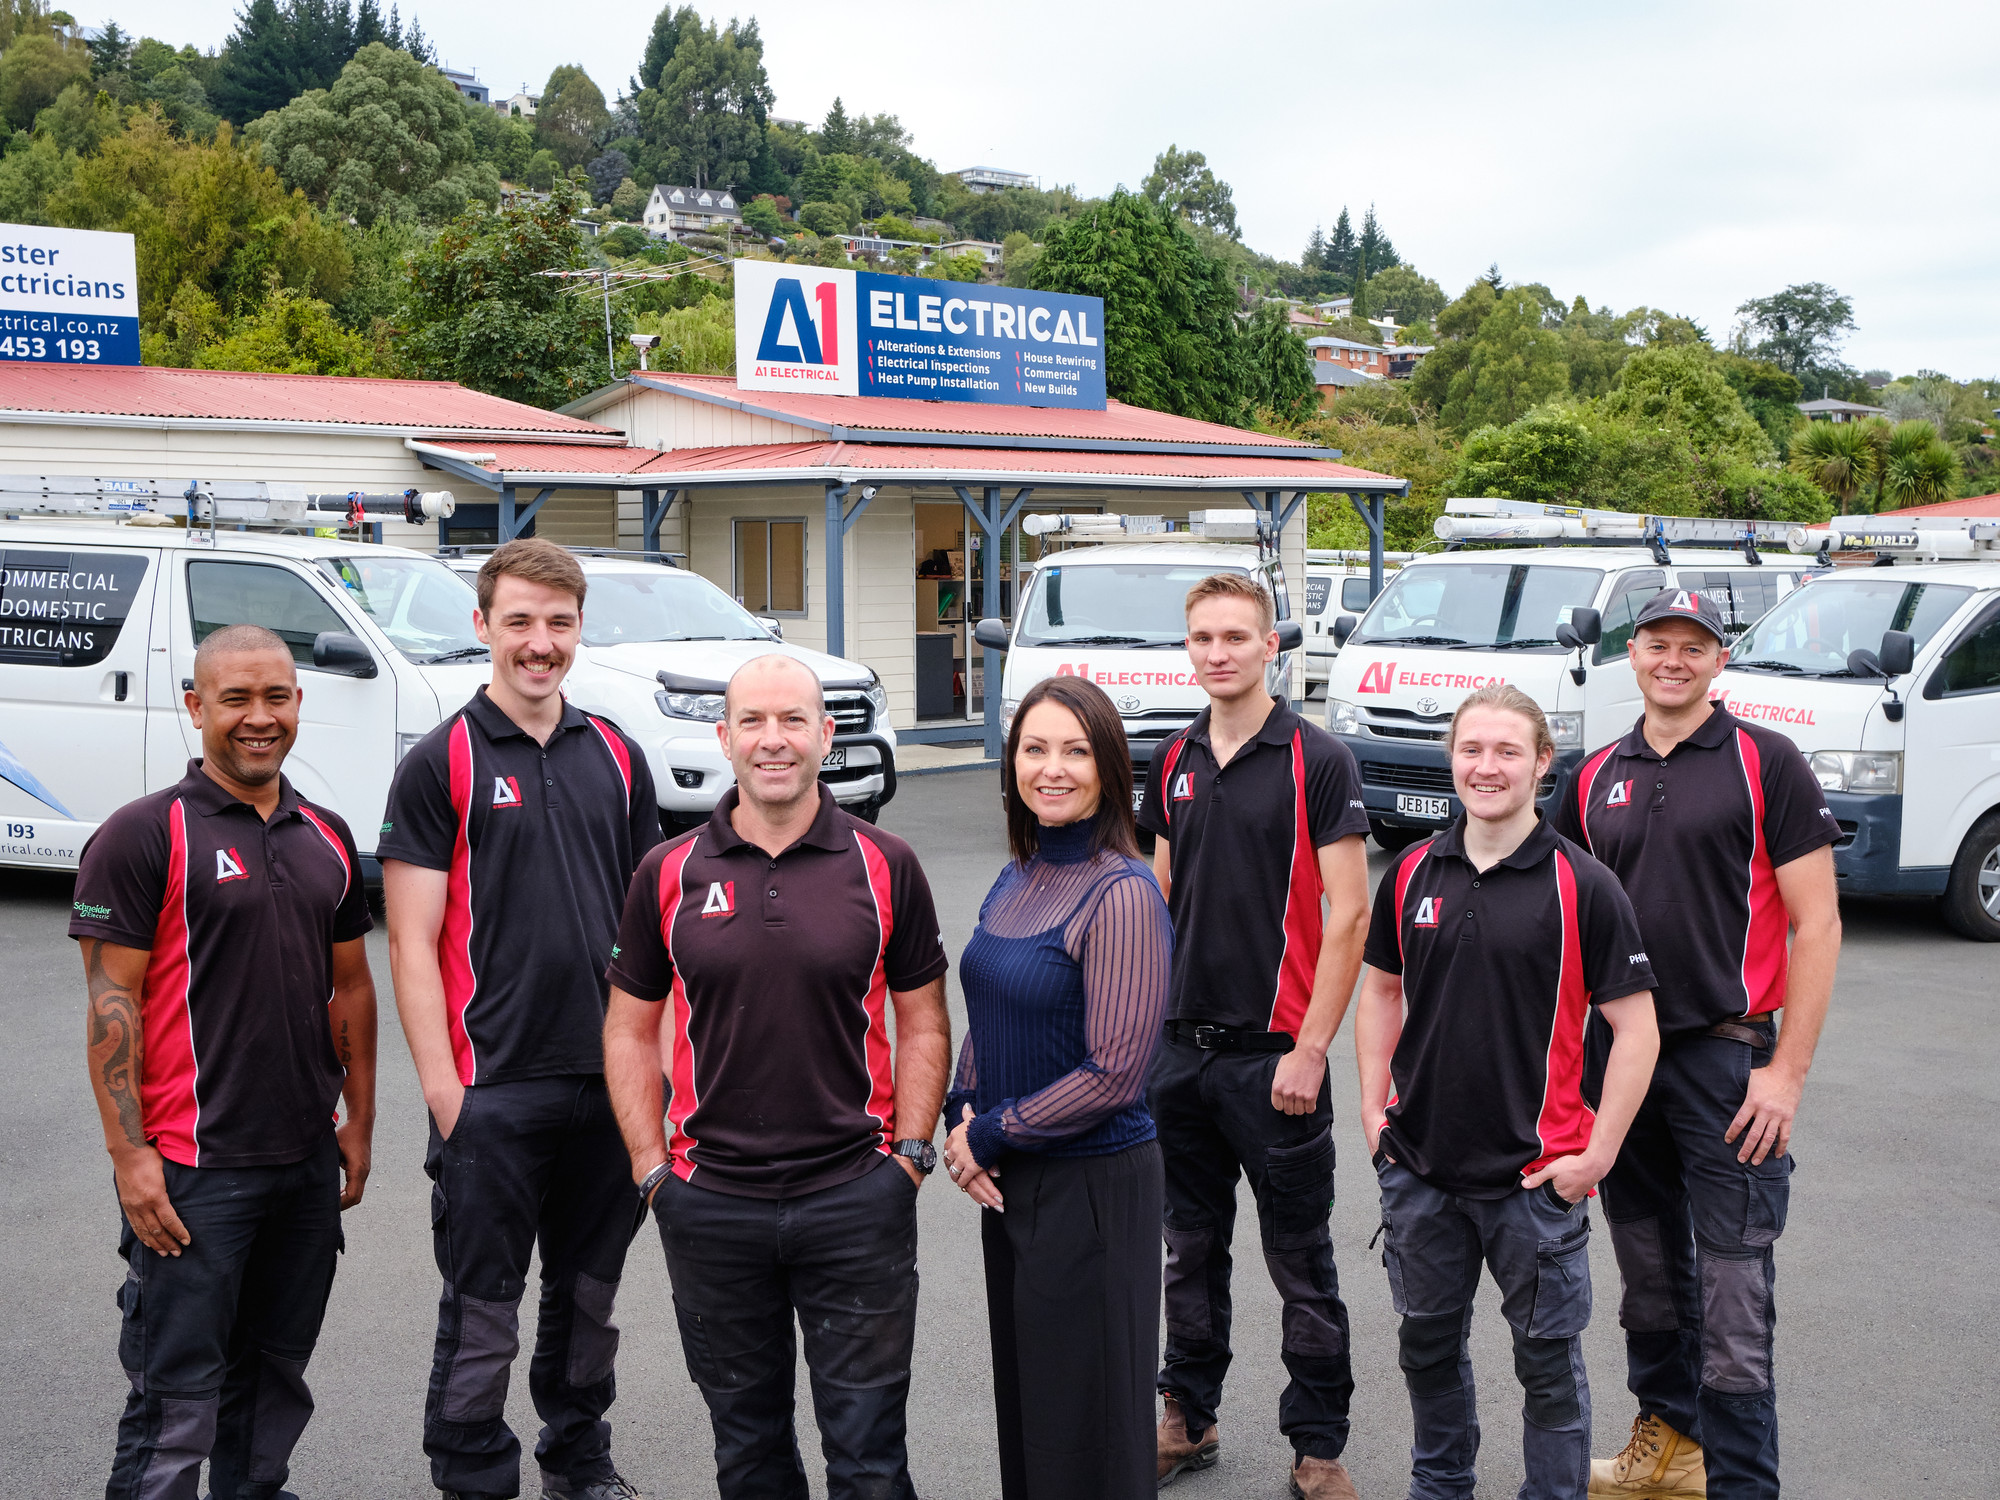 A1 Electrical - join the team